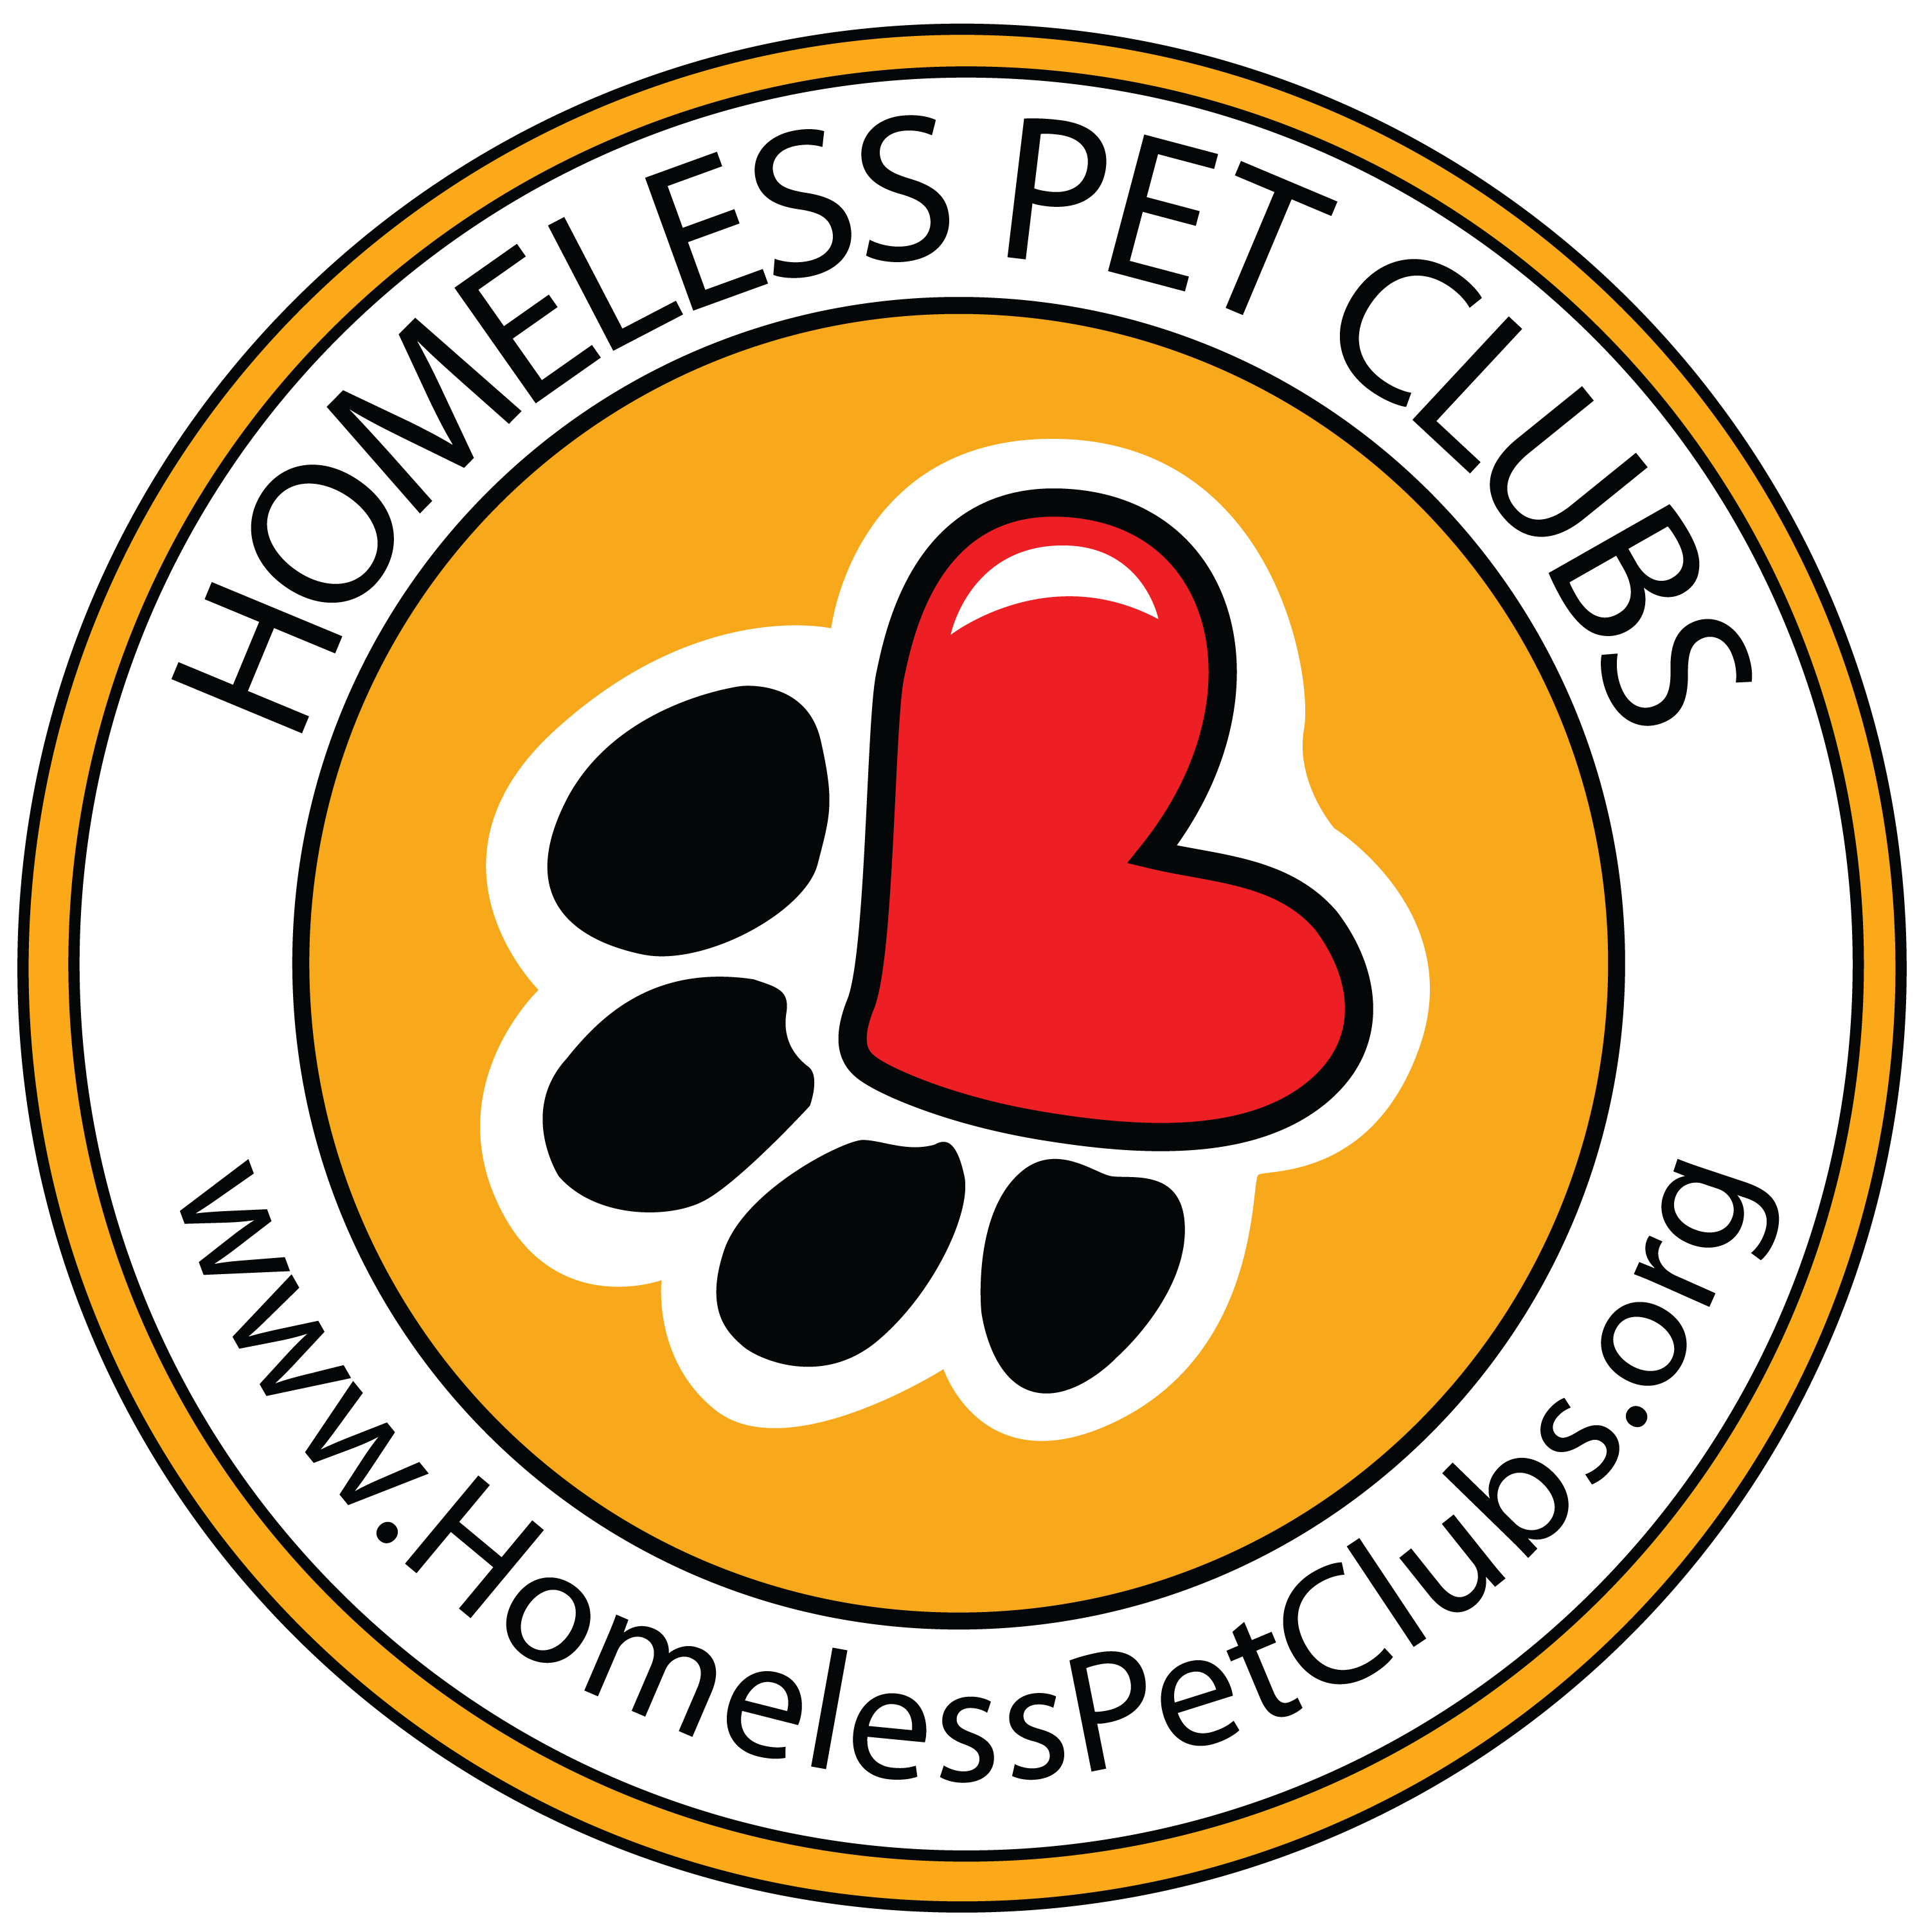 Homeless pet clubs of america resources homeless pet clubs logo large eps buycottarizona